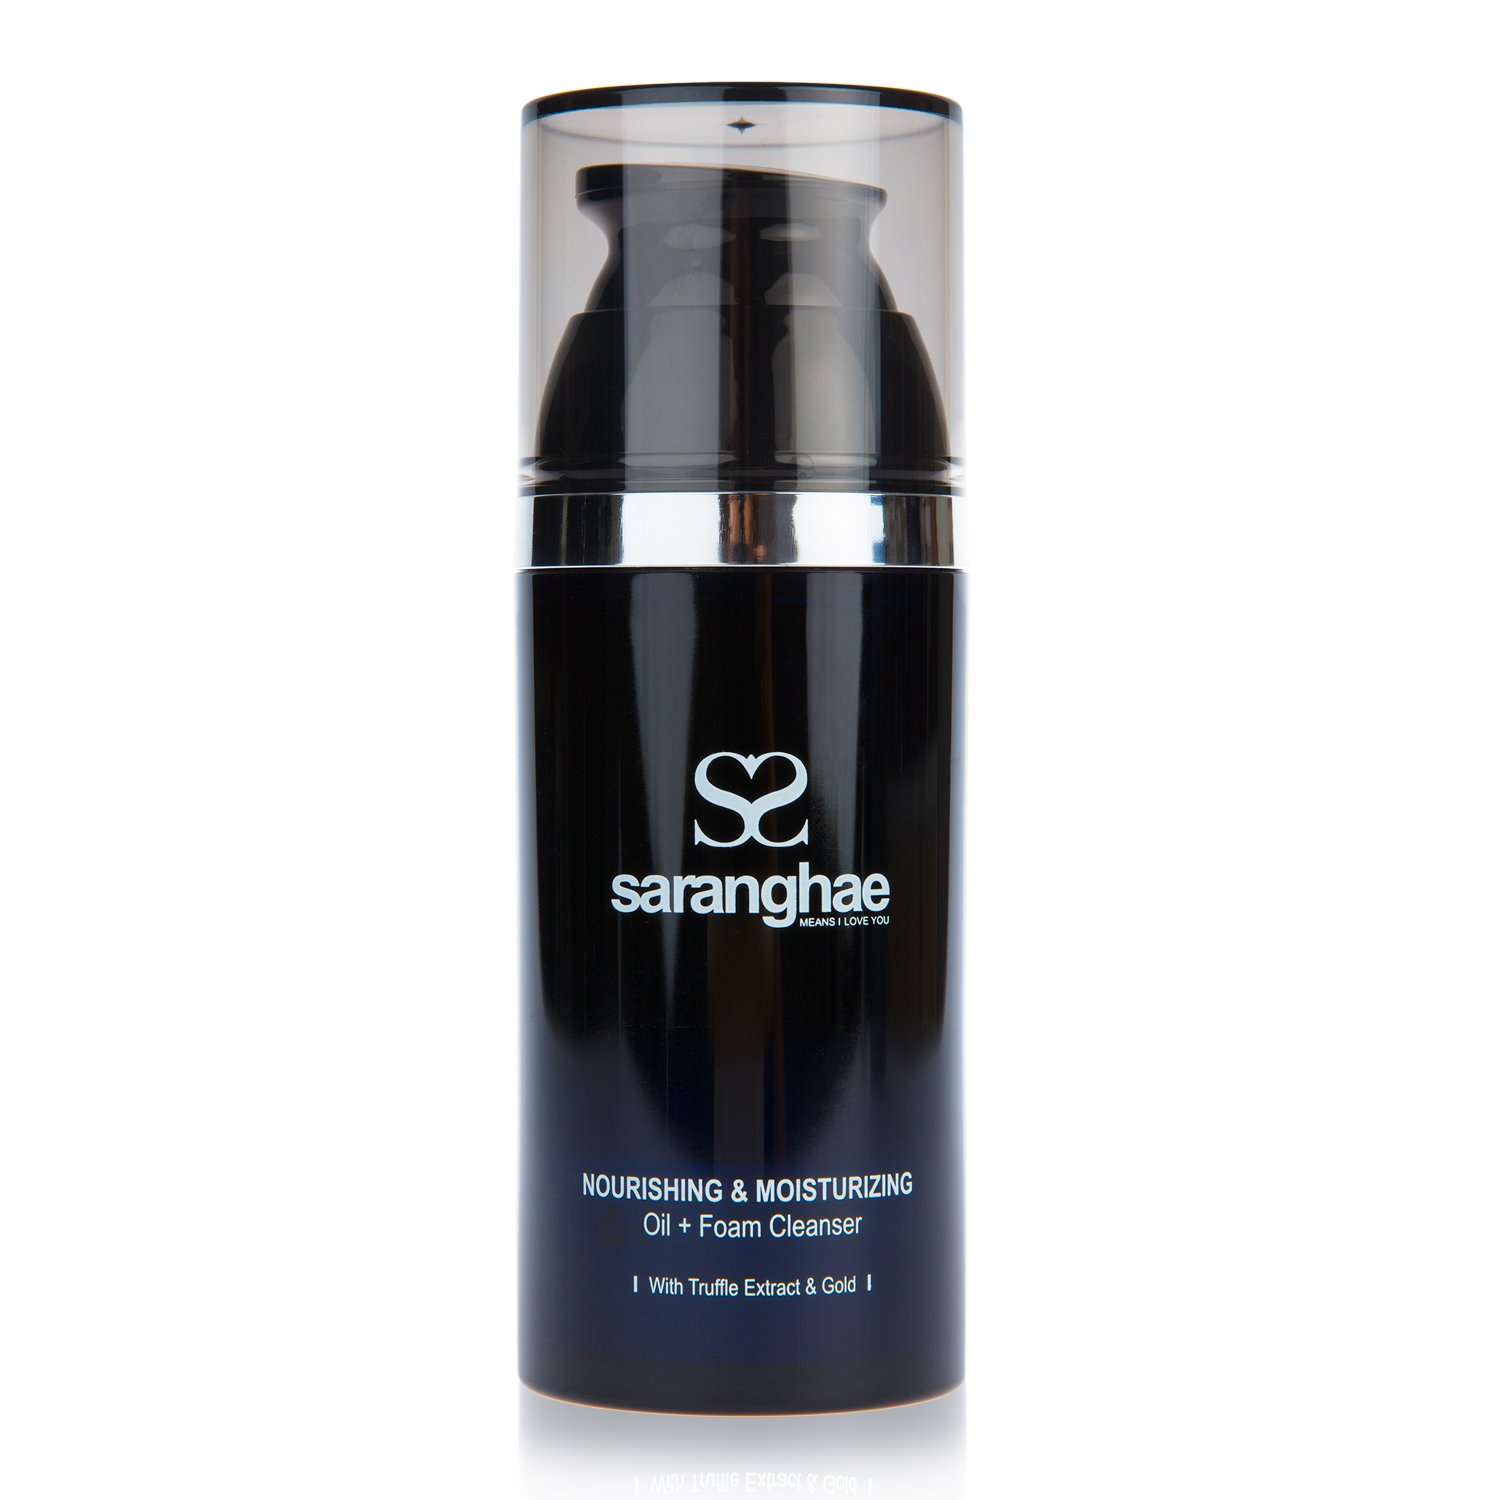 Saranghae Nourishing & Moisturizing Oil + Foam Cleanser with Truffle Extract & Gold: Eliminate Oil, Dirt & Toxins While Hydrating Your Skin At The Same Time